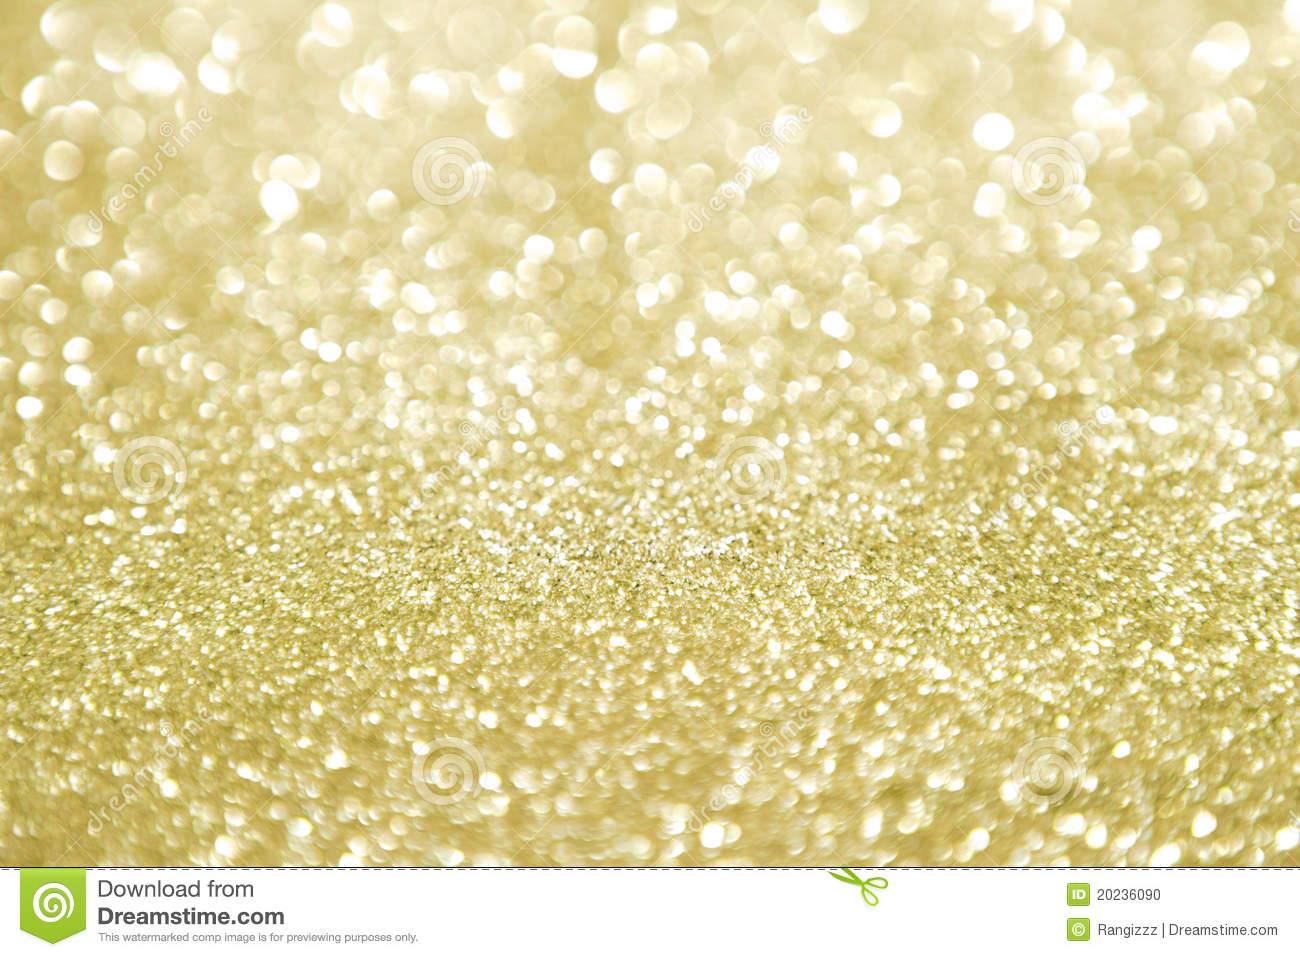 Gold Glitter Clipart - Clipart Suggest